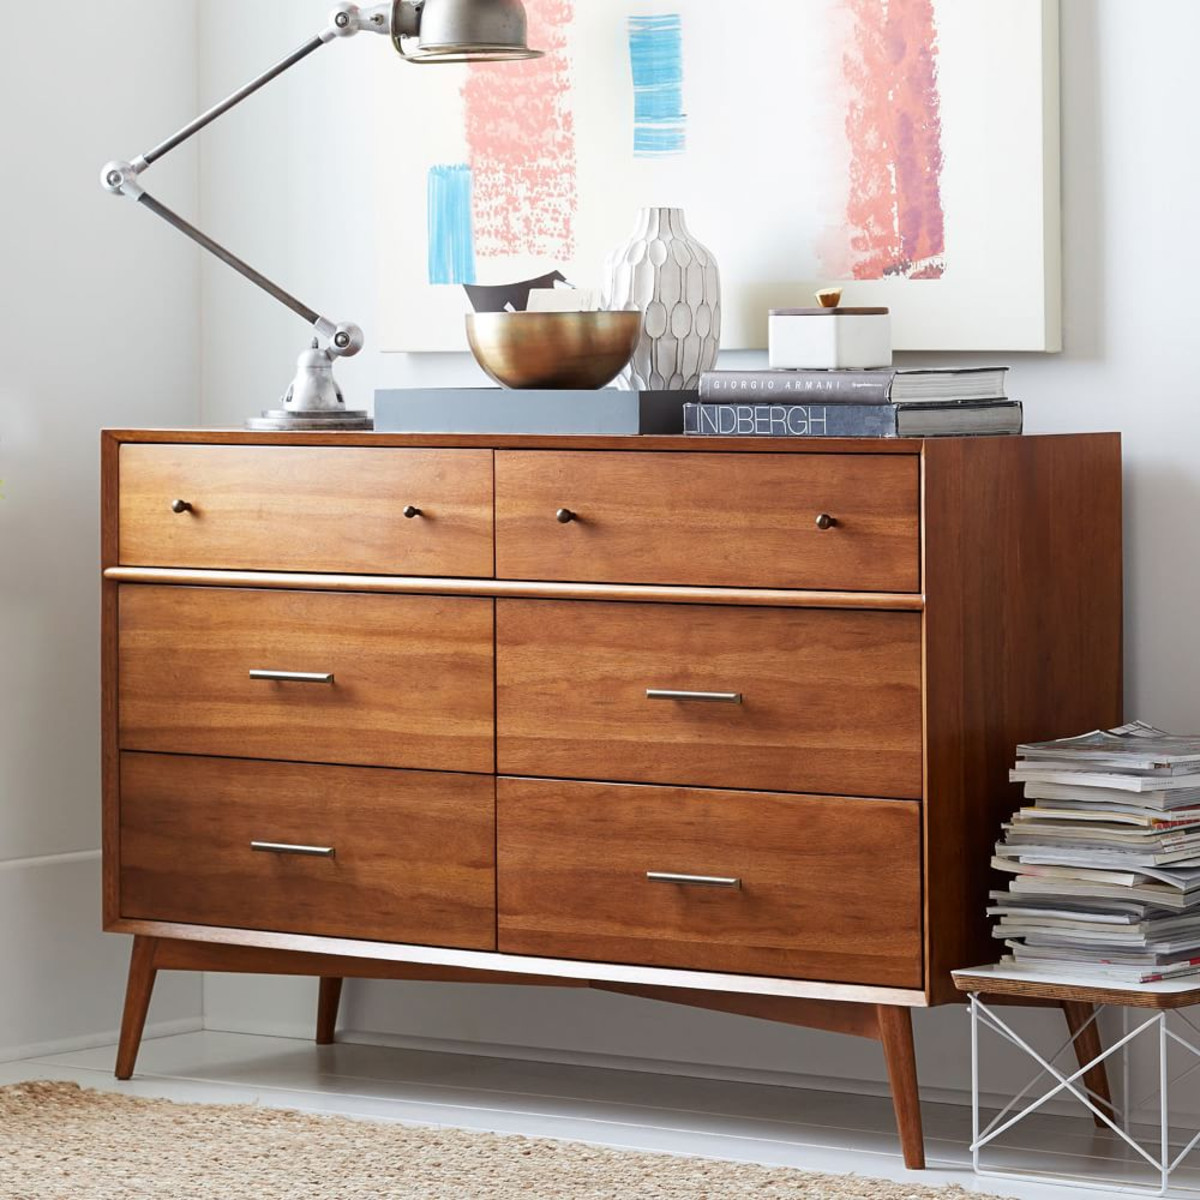 Image of: Mid Century Dresser West Elm